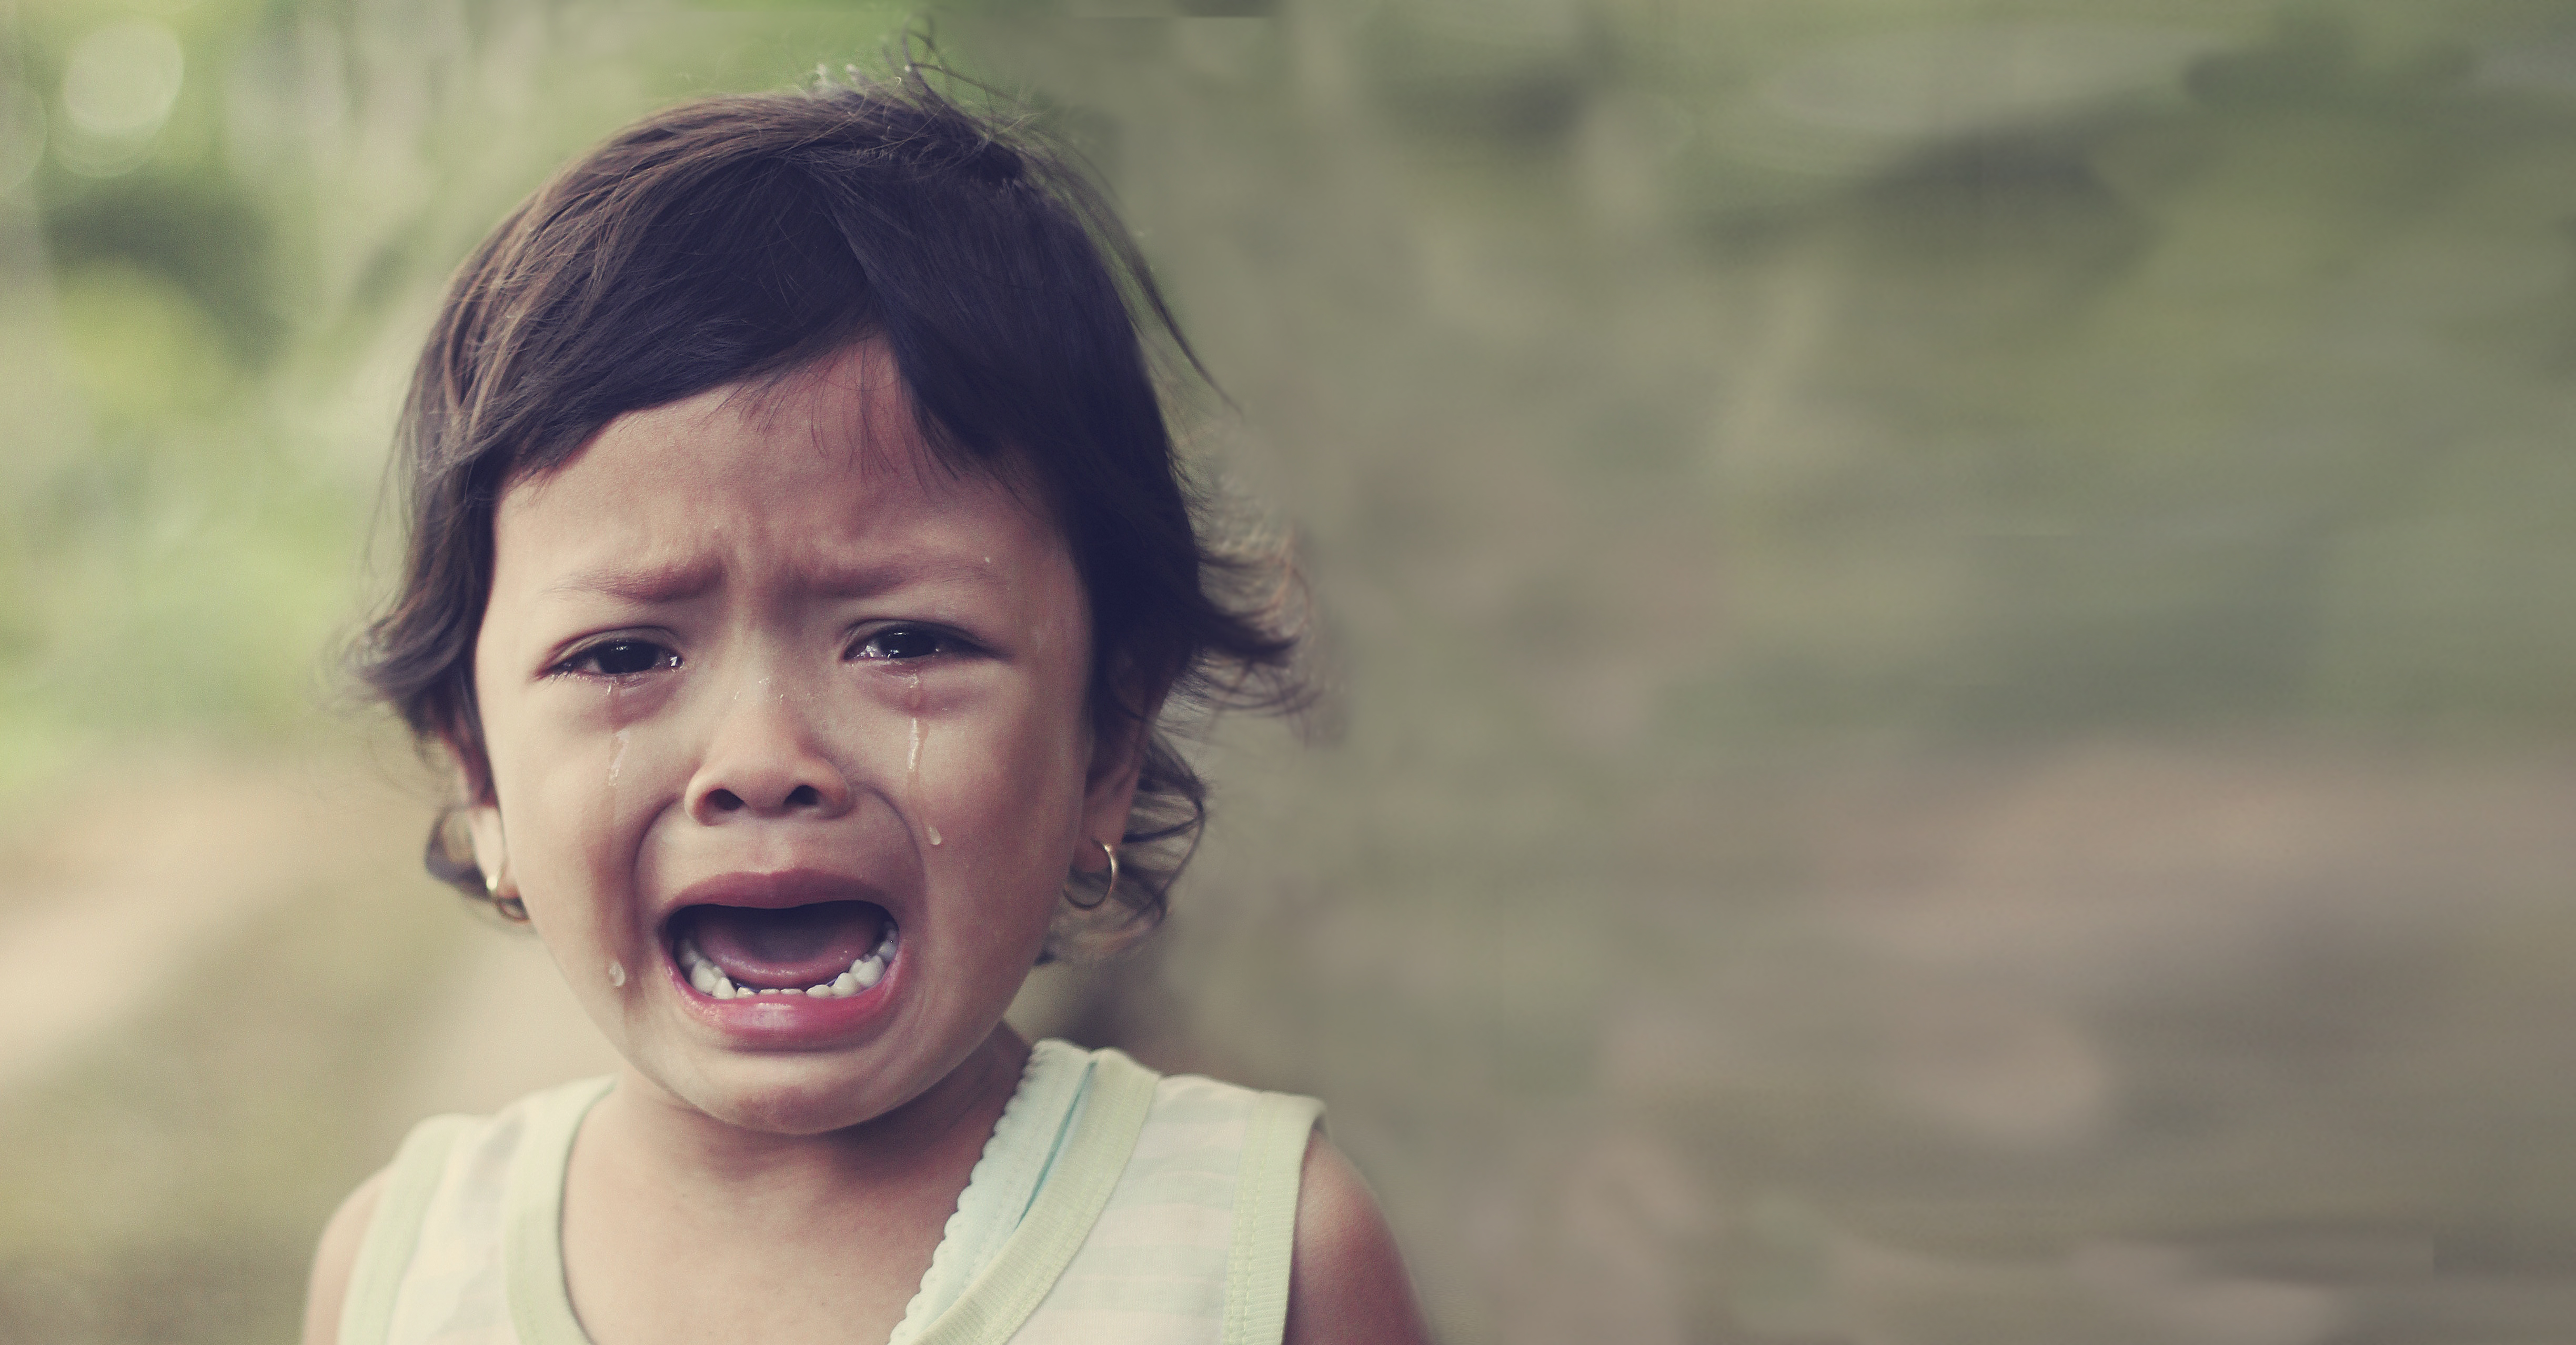 Young child crying in nature with tears streaming down her face